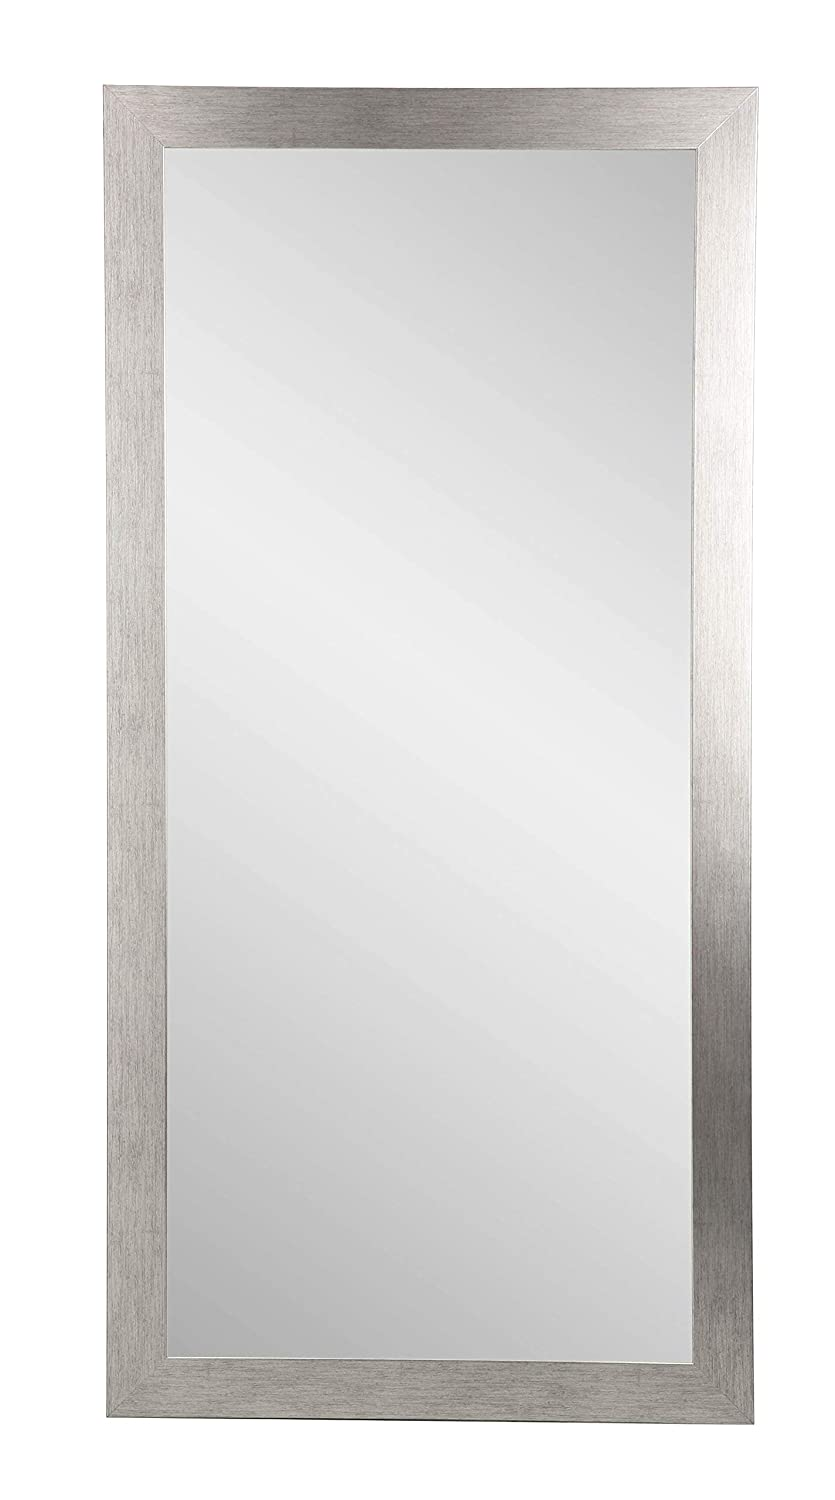 BrandtWorks Stainless Grain Wall Mirror, 32